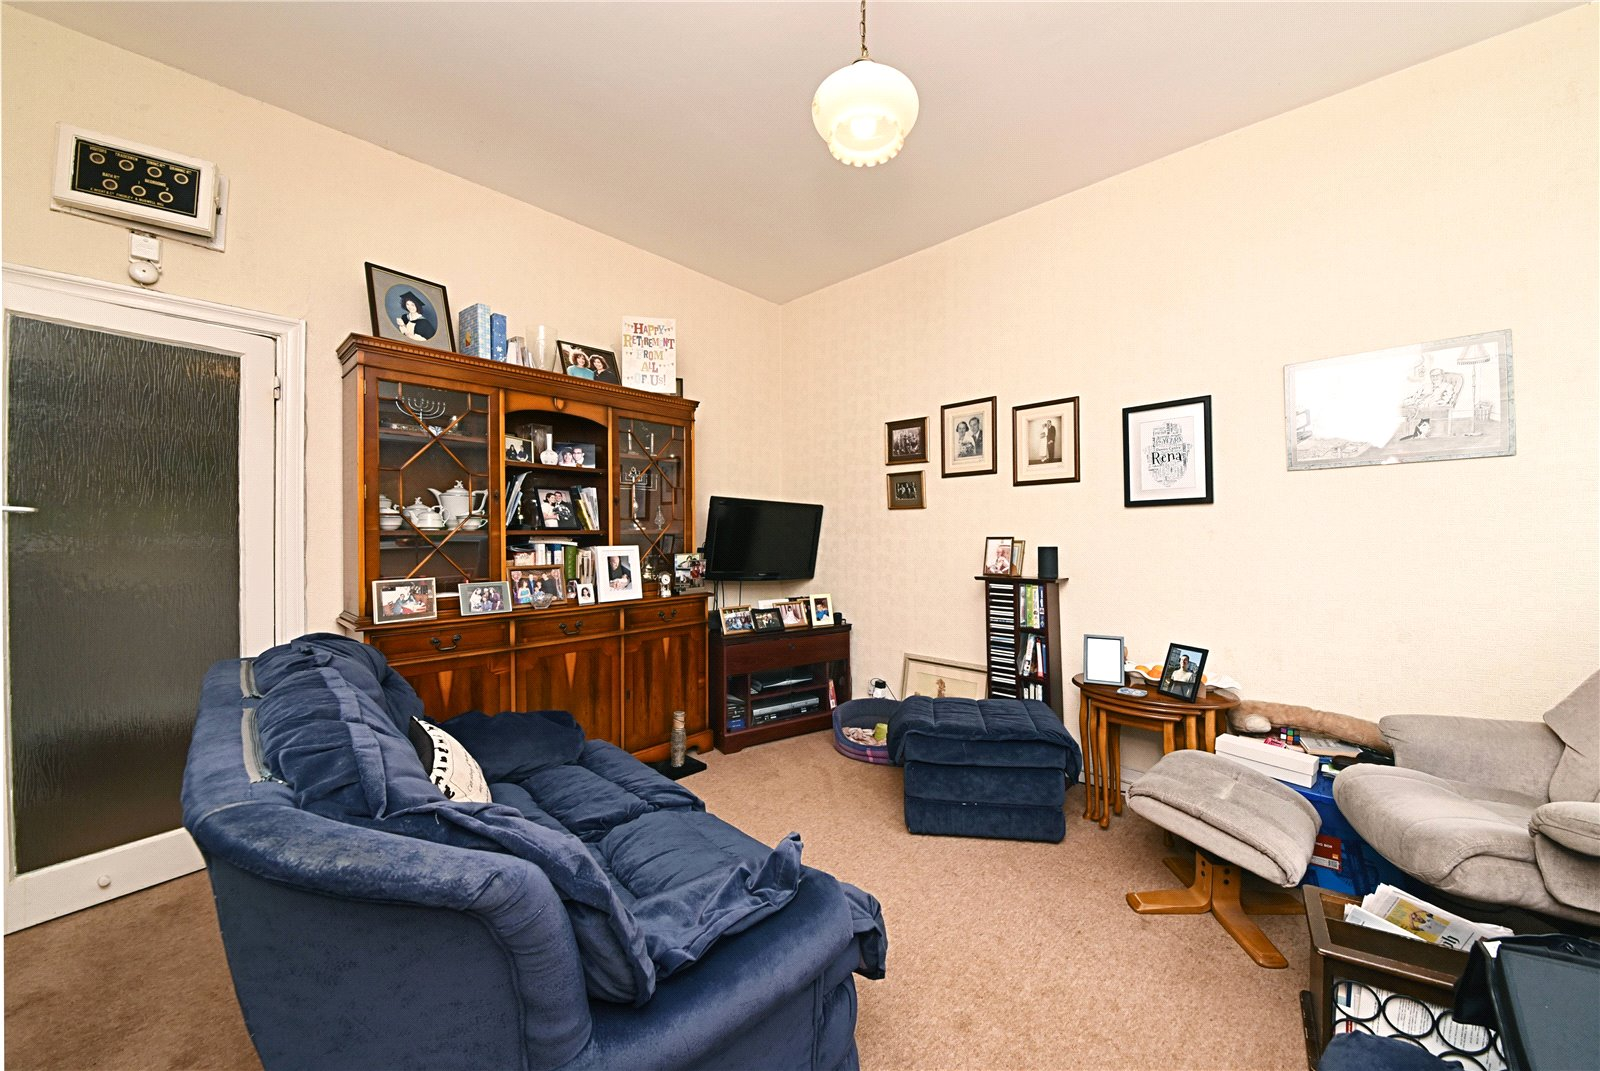 4 bed house for sale in Whetstone, N20 9ED  - Property Image 7